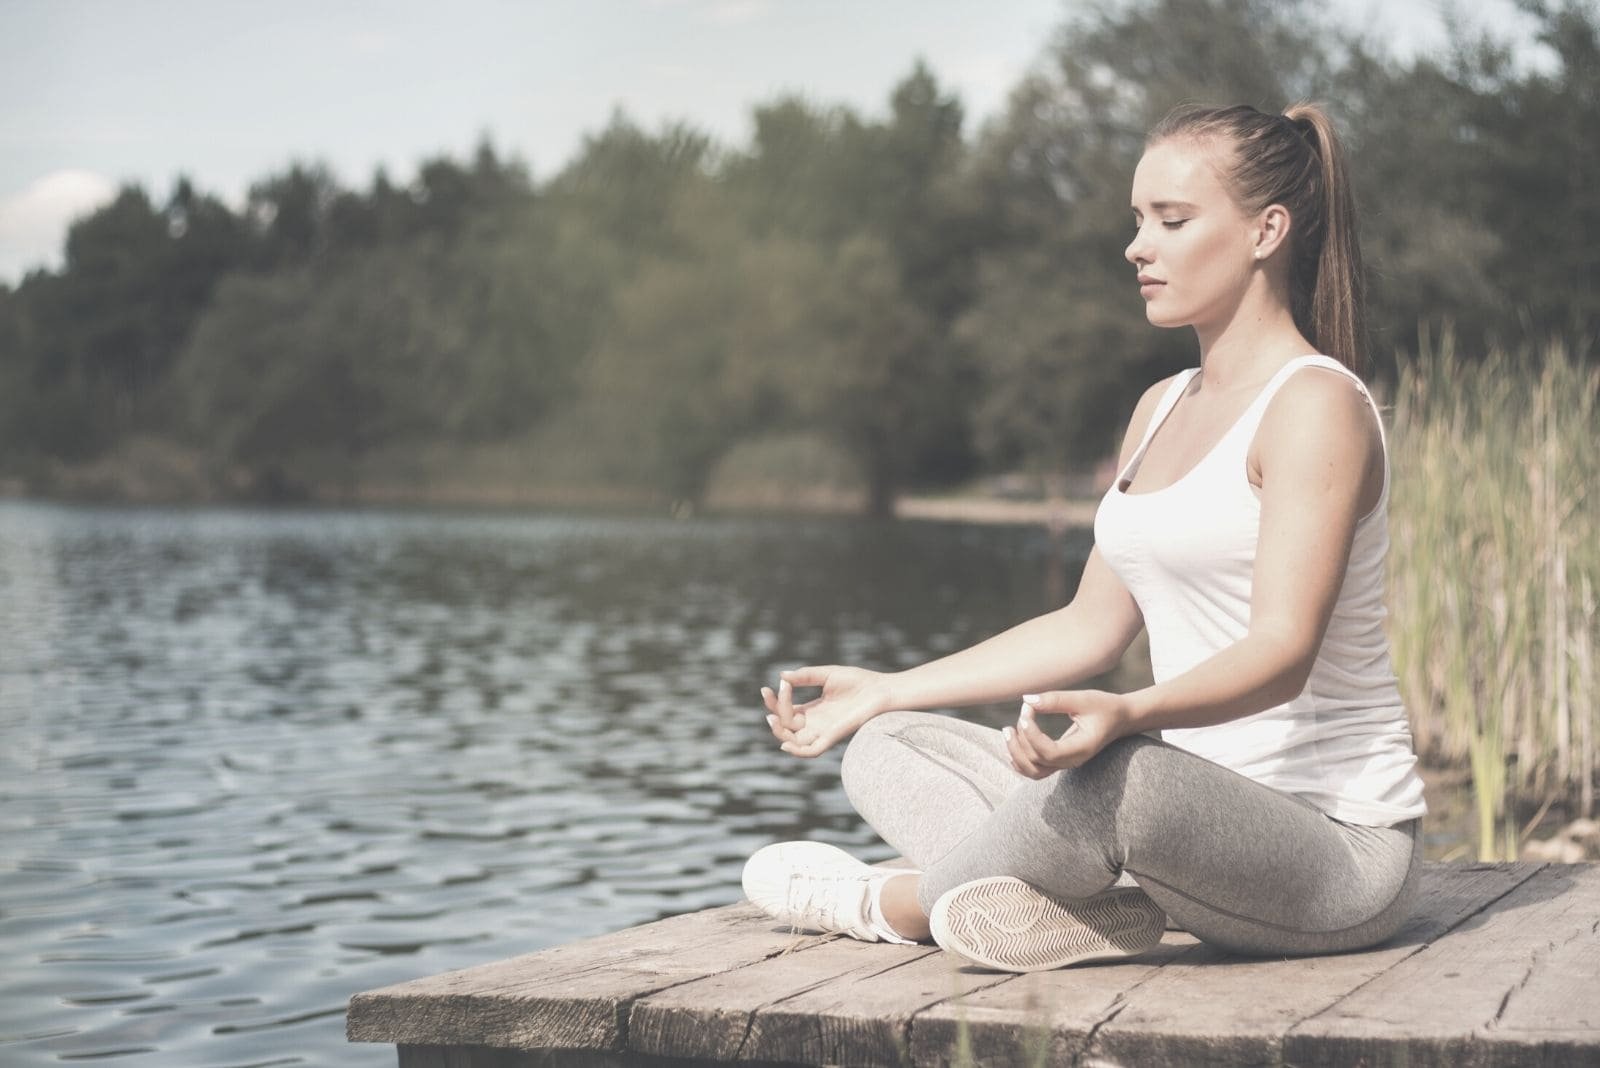 young woman meditating in yoga pose on top of a wooden platform near the body of water